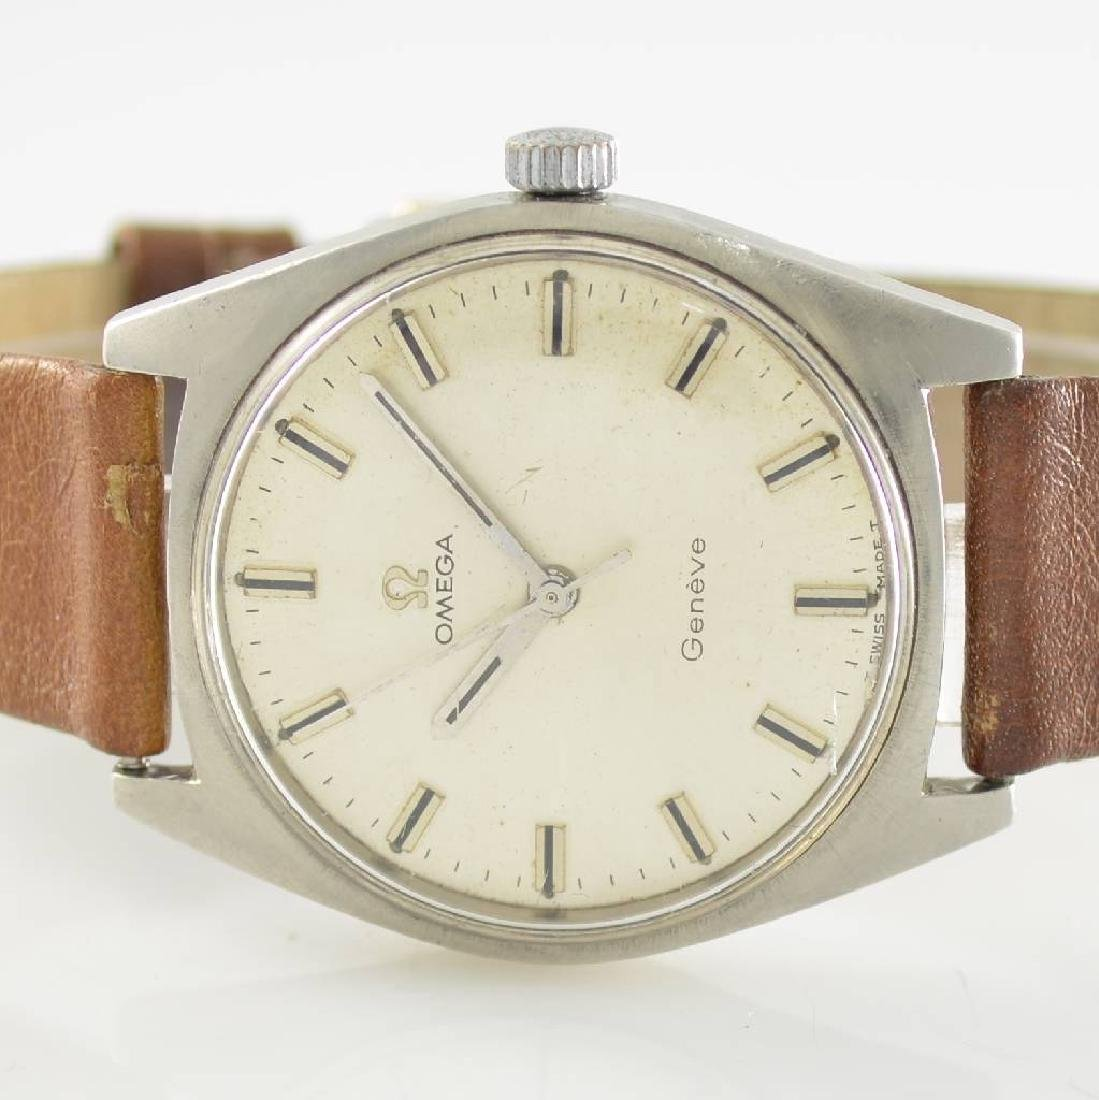 OMEGA manual wound gents wristwatch series Geneve - 2